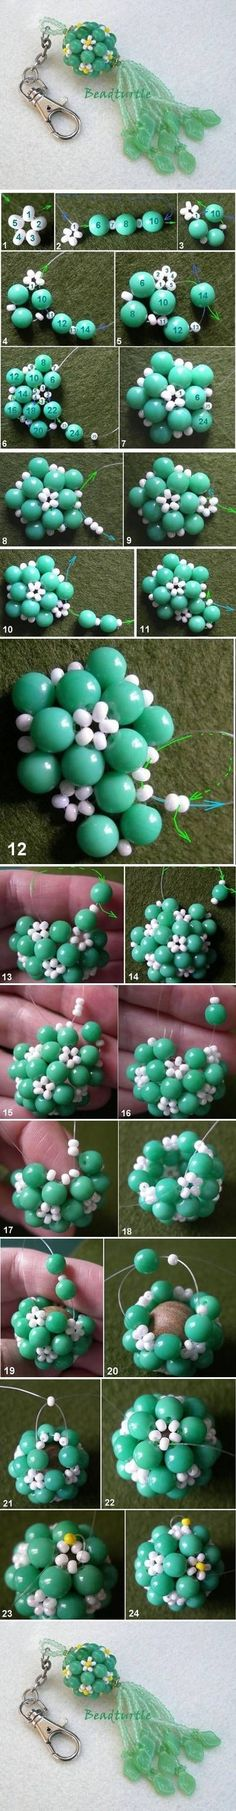 DIY Key Chain Beads Charm Pictures, Photos, and Images for Facebook, Tumblr, Pinterest, and Twitter